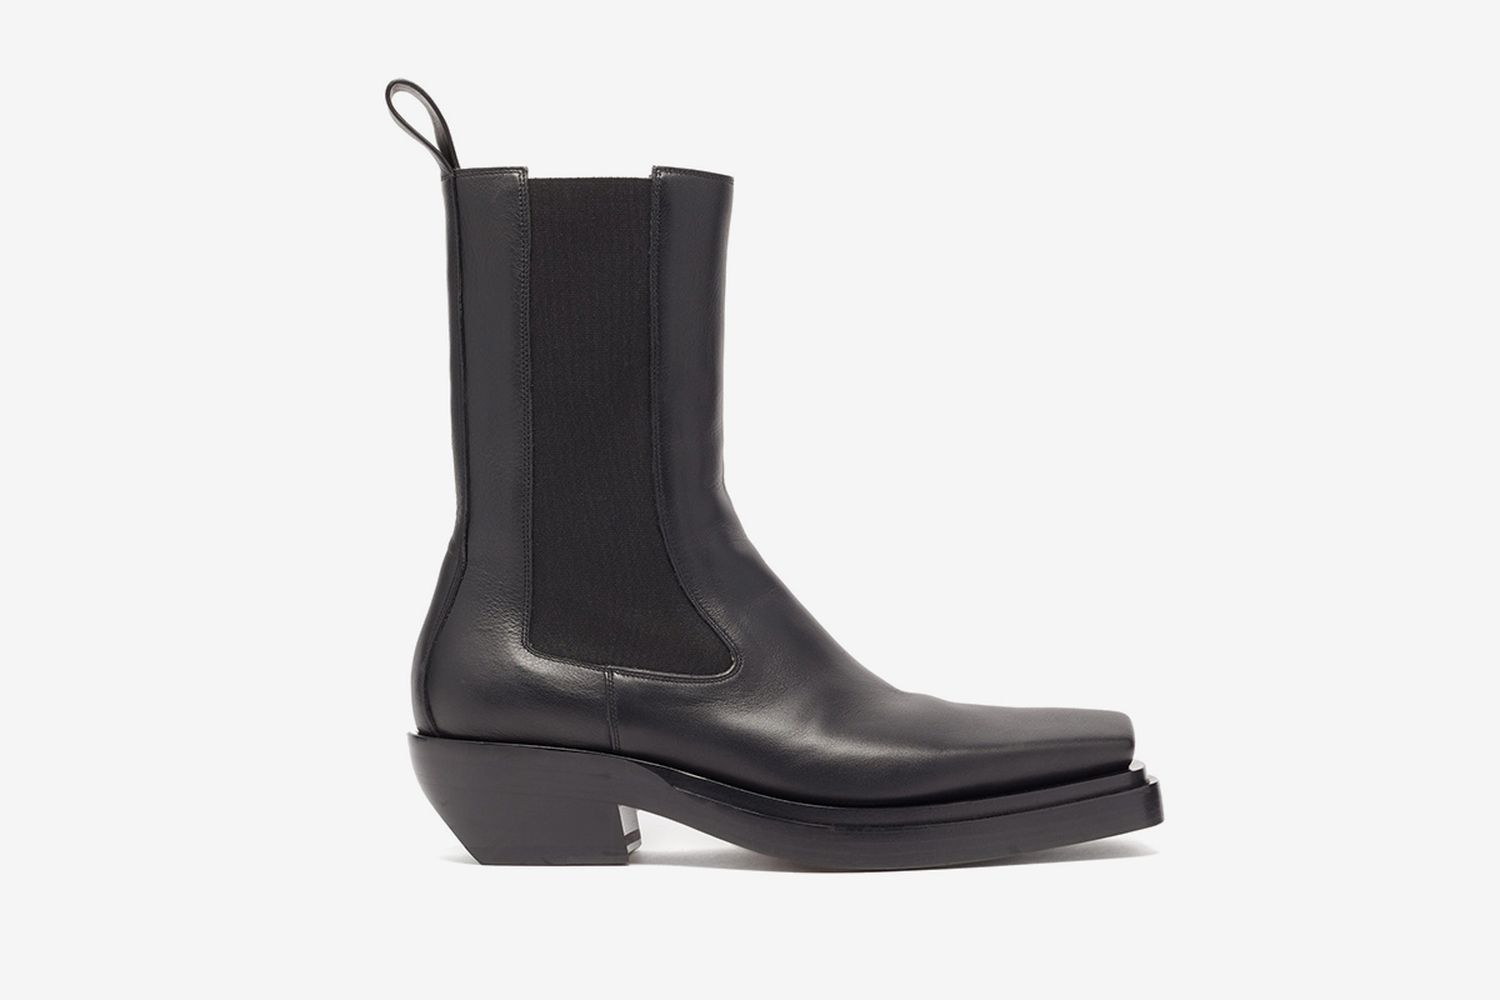 The Lean Leather Chelsea Boots